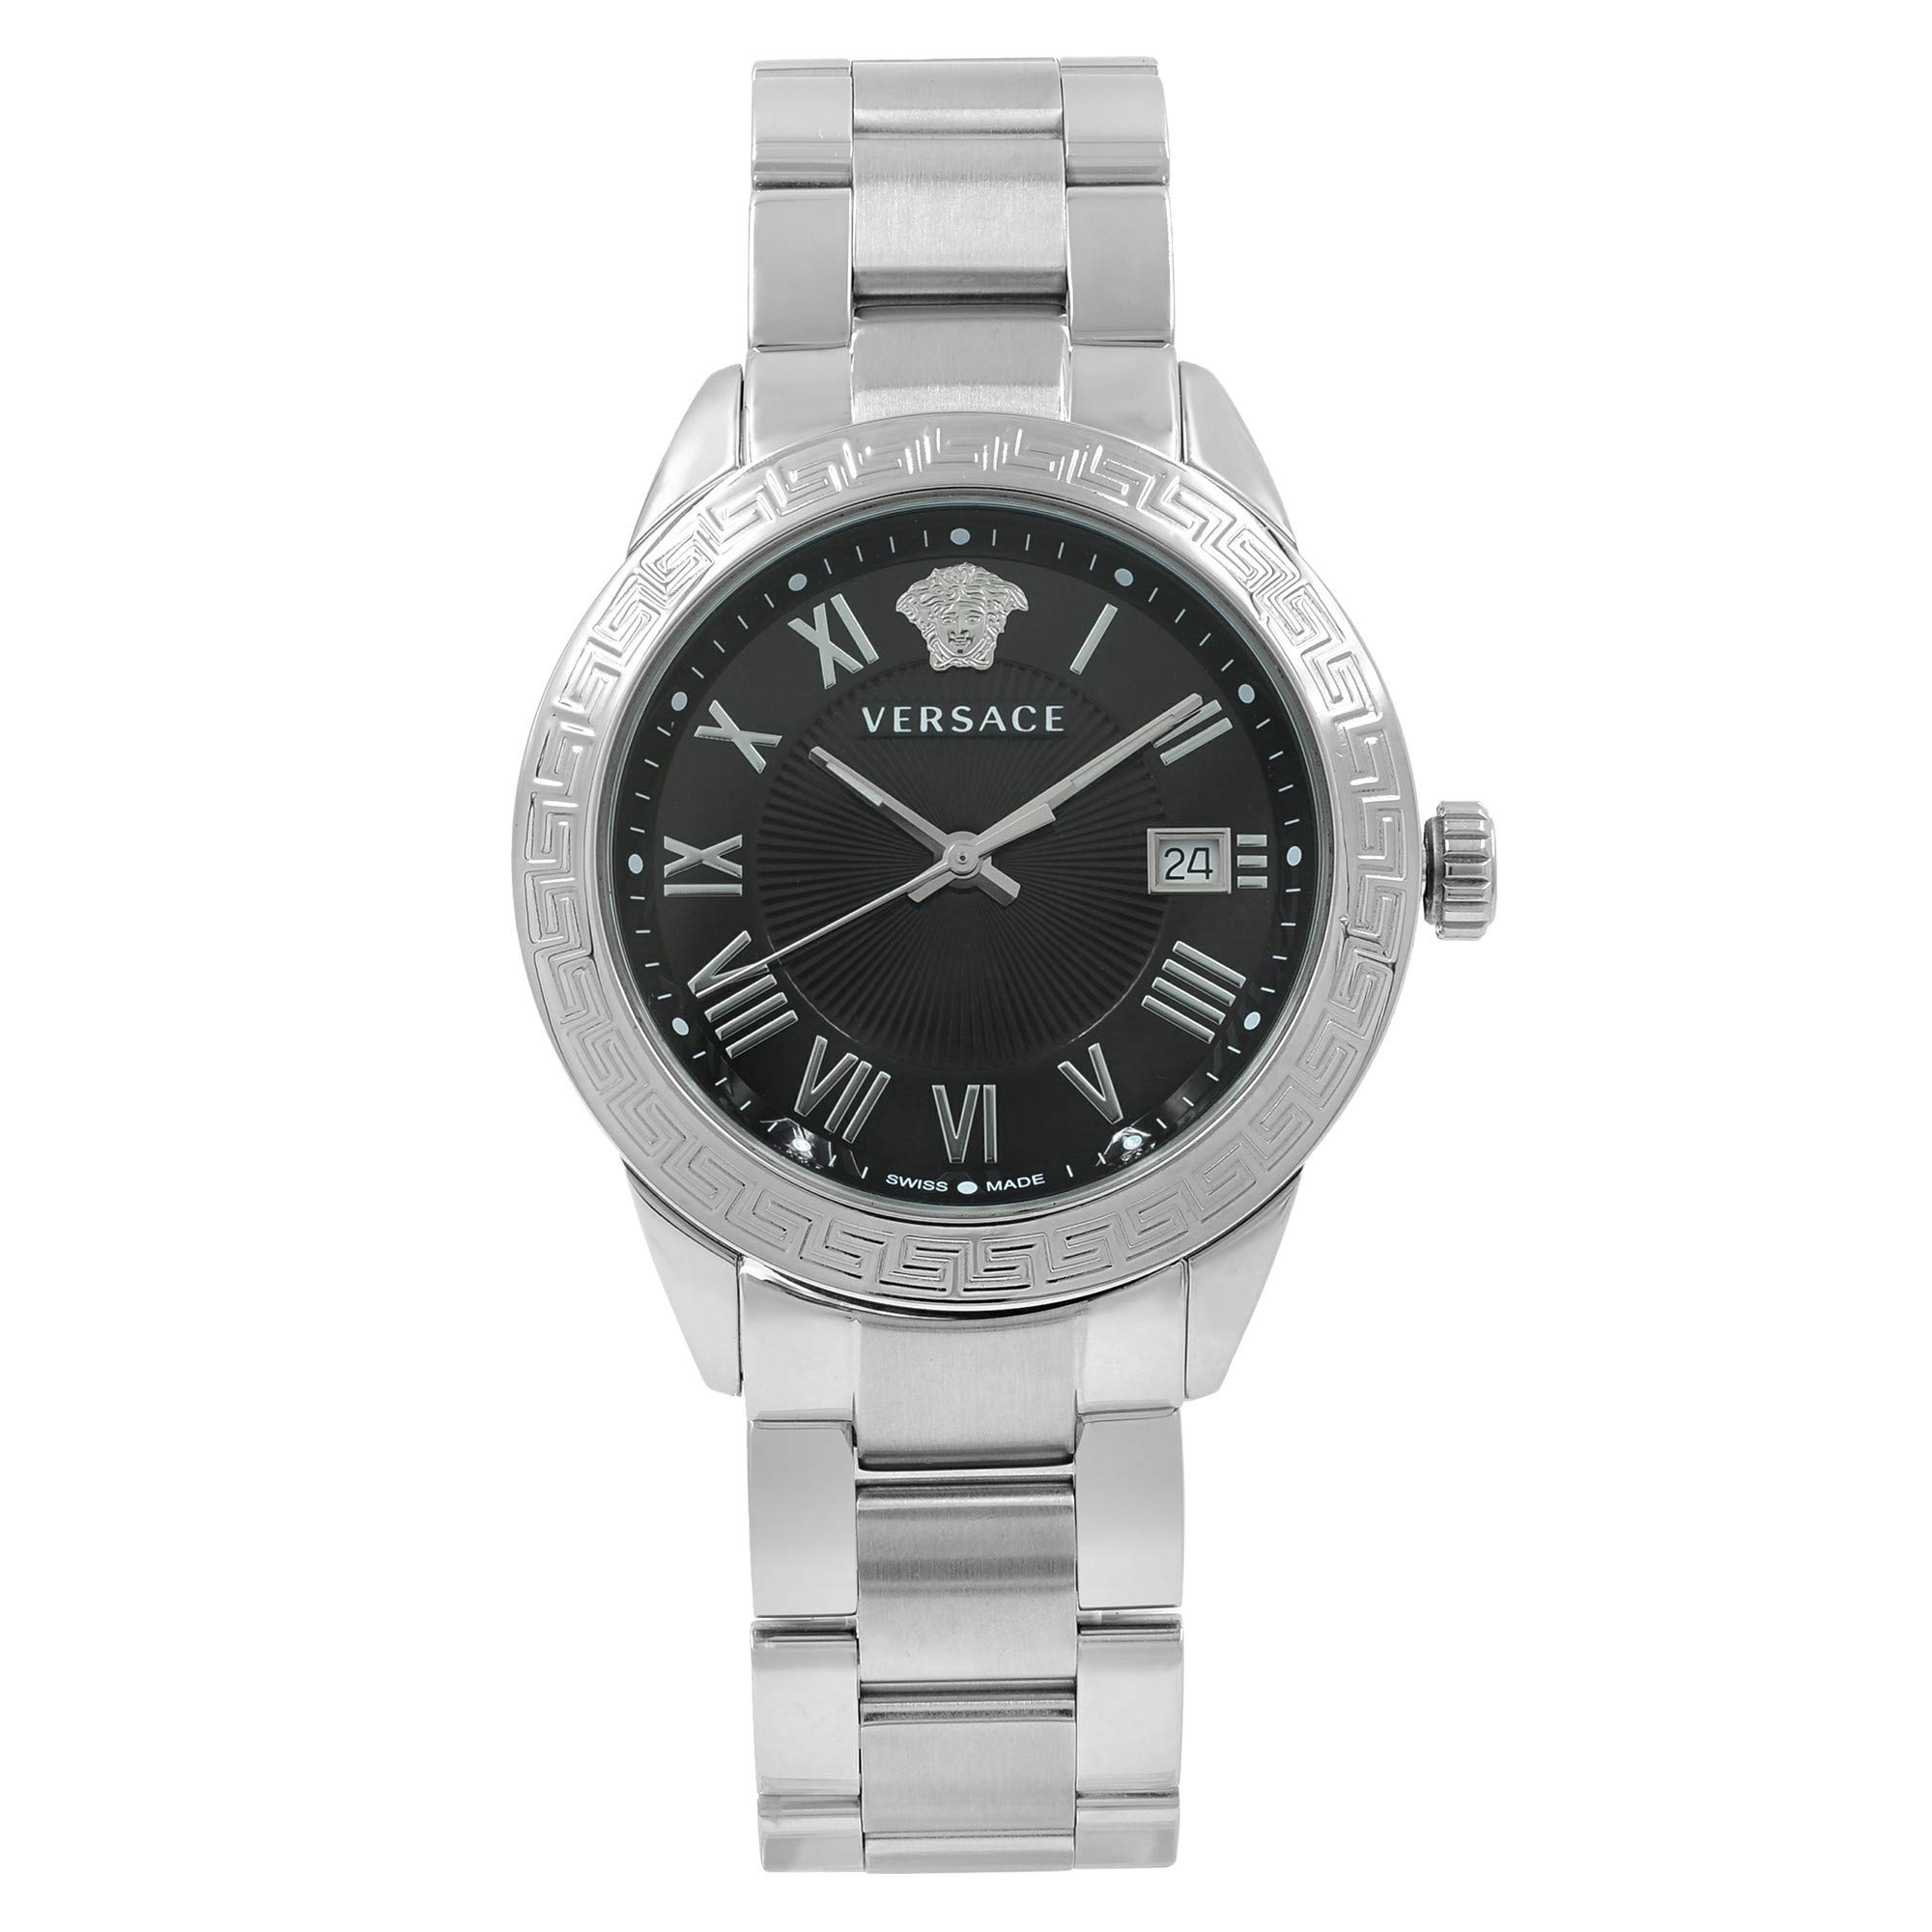 Versace Landmark Quartz Male Watch P6Q99GD008S099 (Certified Pre-Owned) by Versace